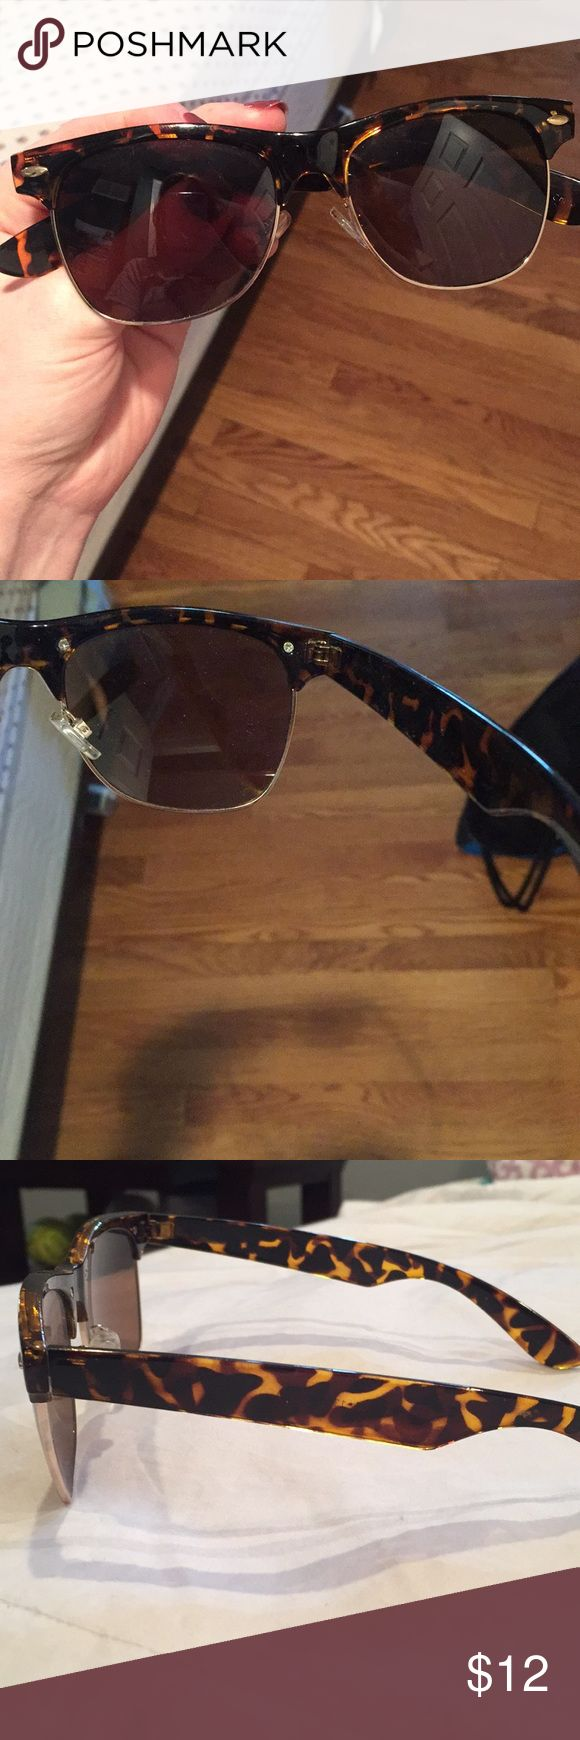 Nordstrom BP tortoise sunglasses Only worn once or twice. Shape is comparable to Ray ban wayfarer. bp Accessories Sunglasses